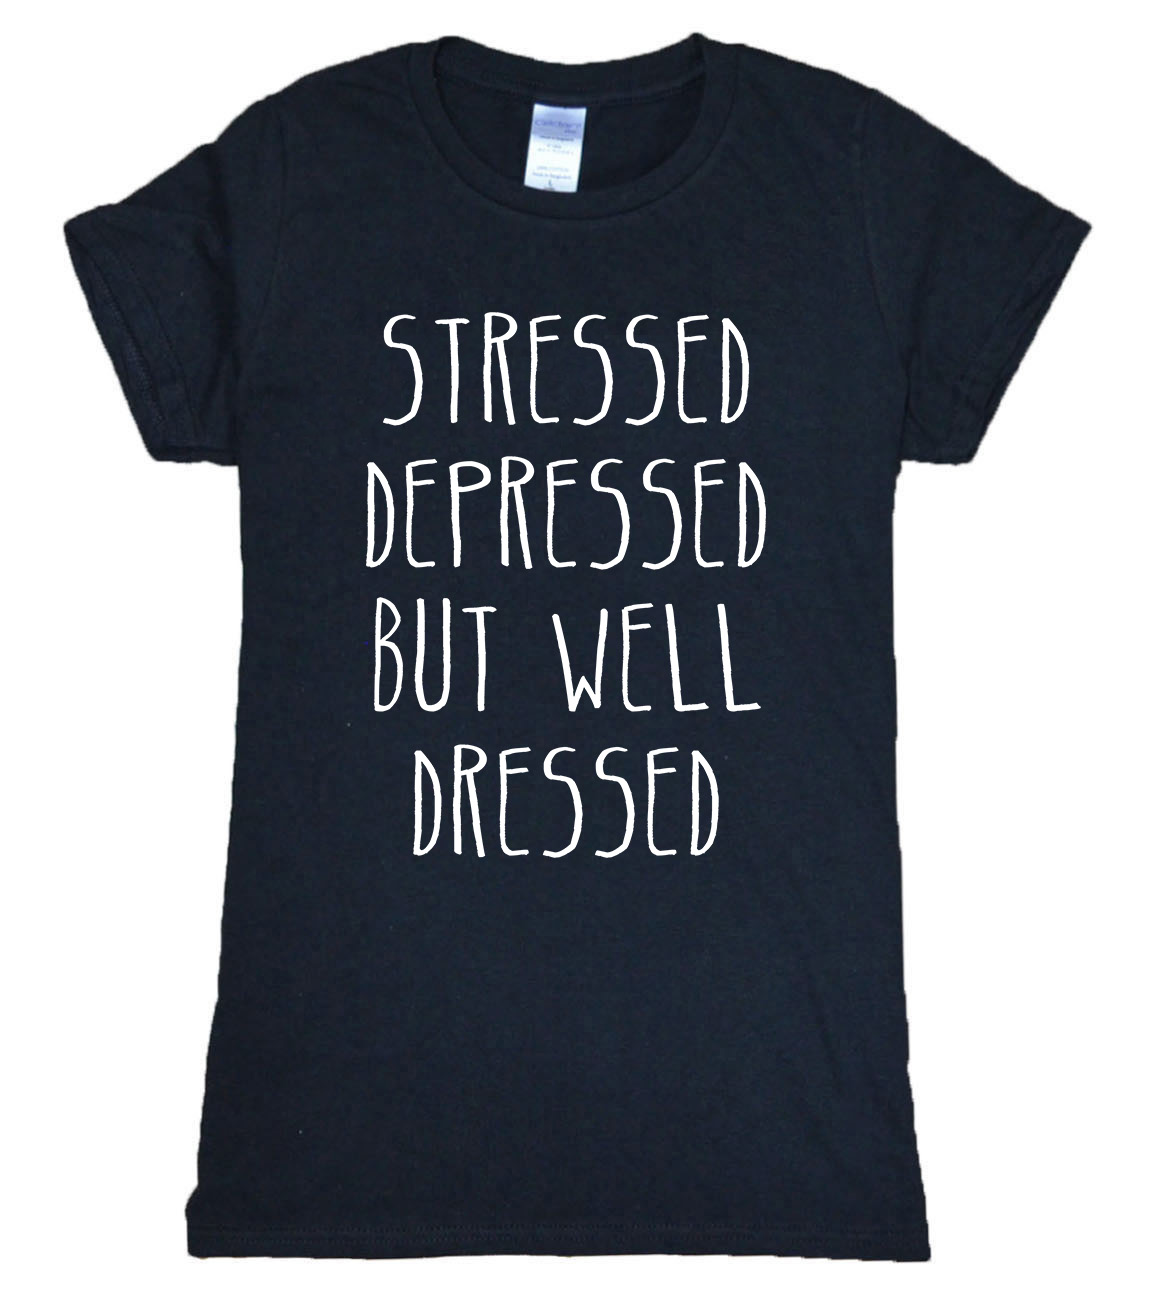 Stressed Depressed But Well Dressed 2017 Summer funny t-shirt women brand tops harajuku t-shirt 100% cotton high quality tshirt